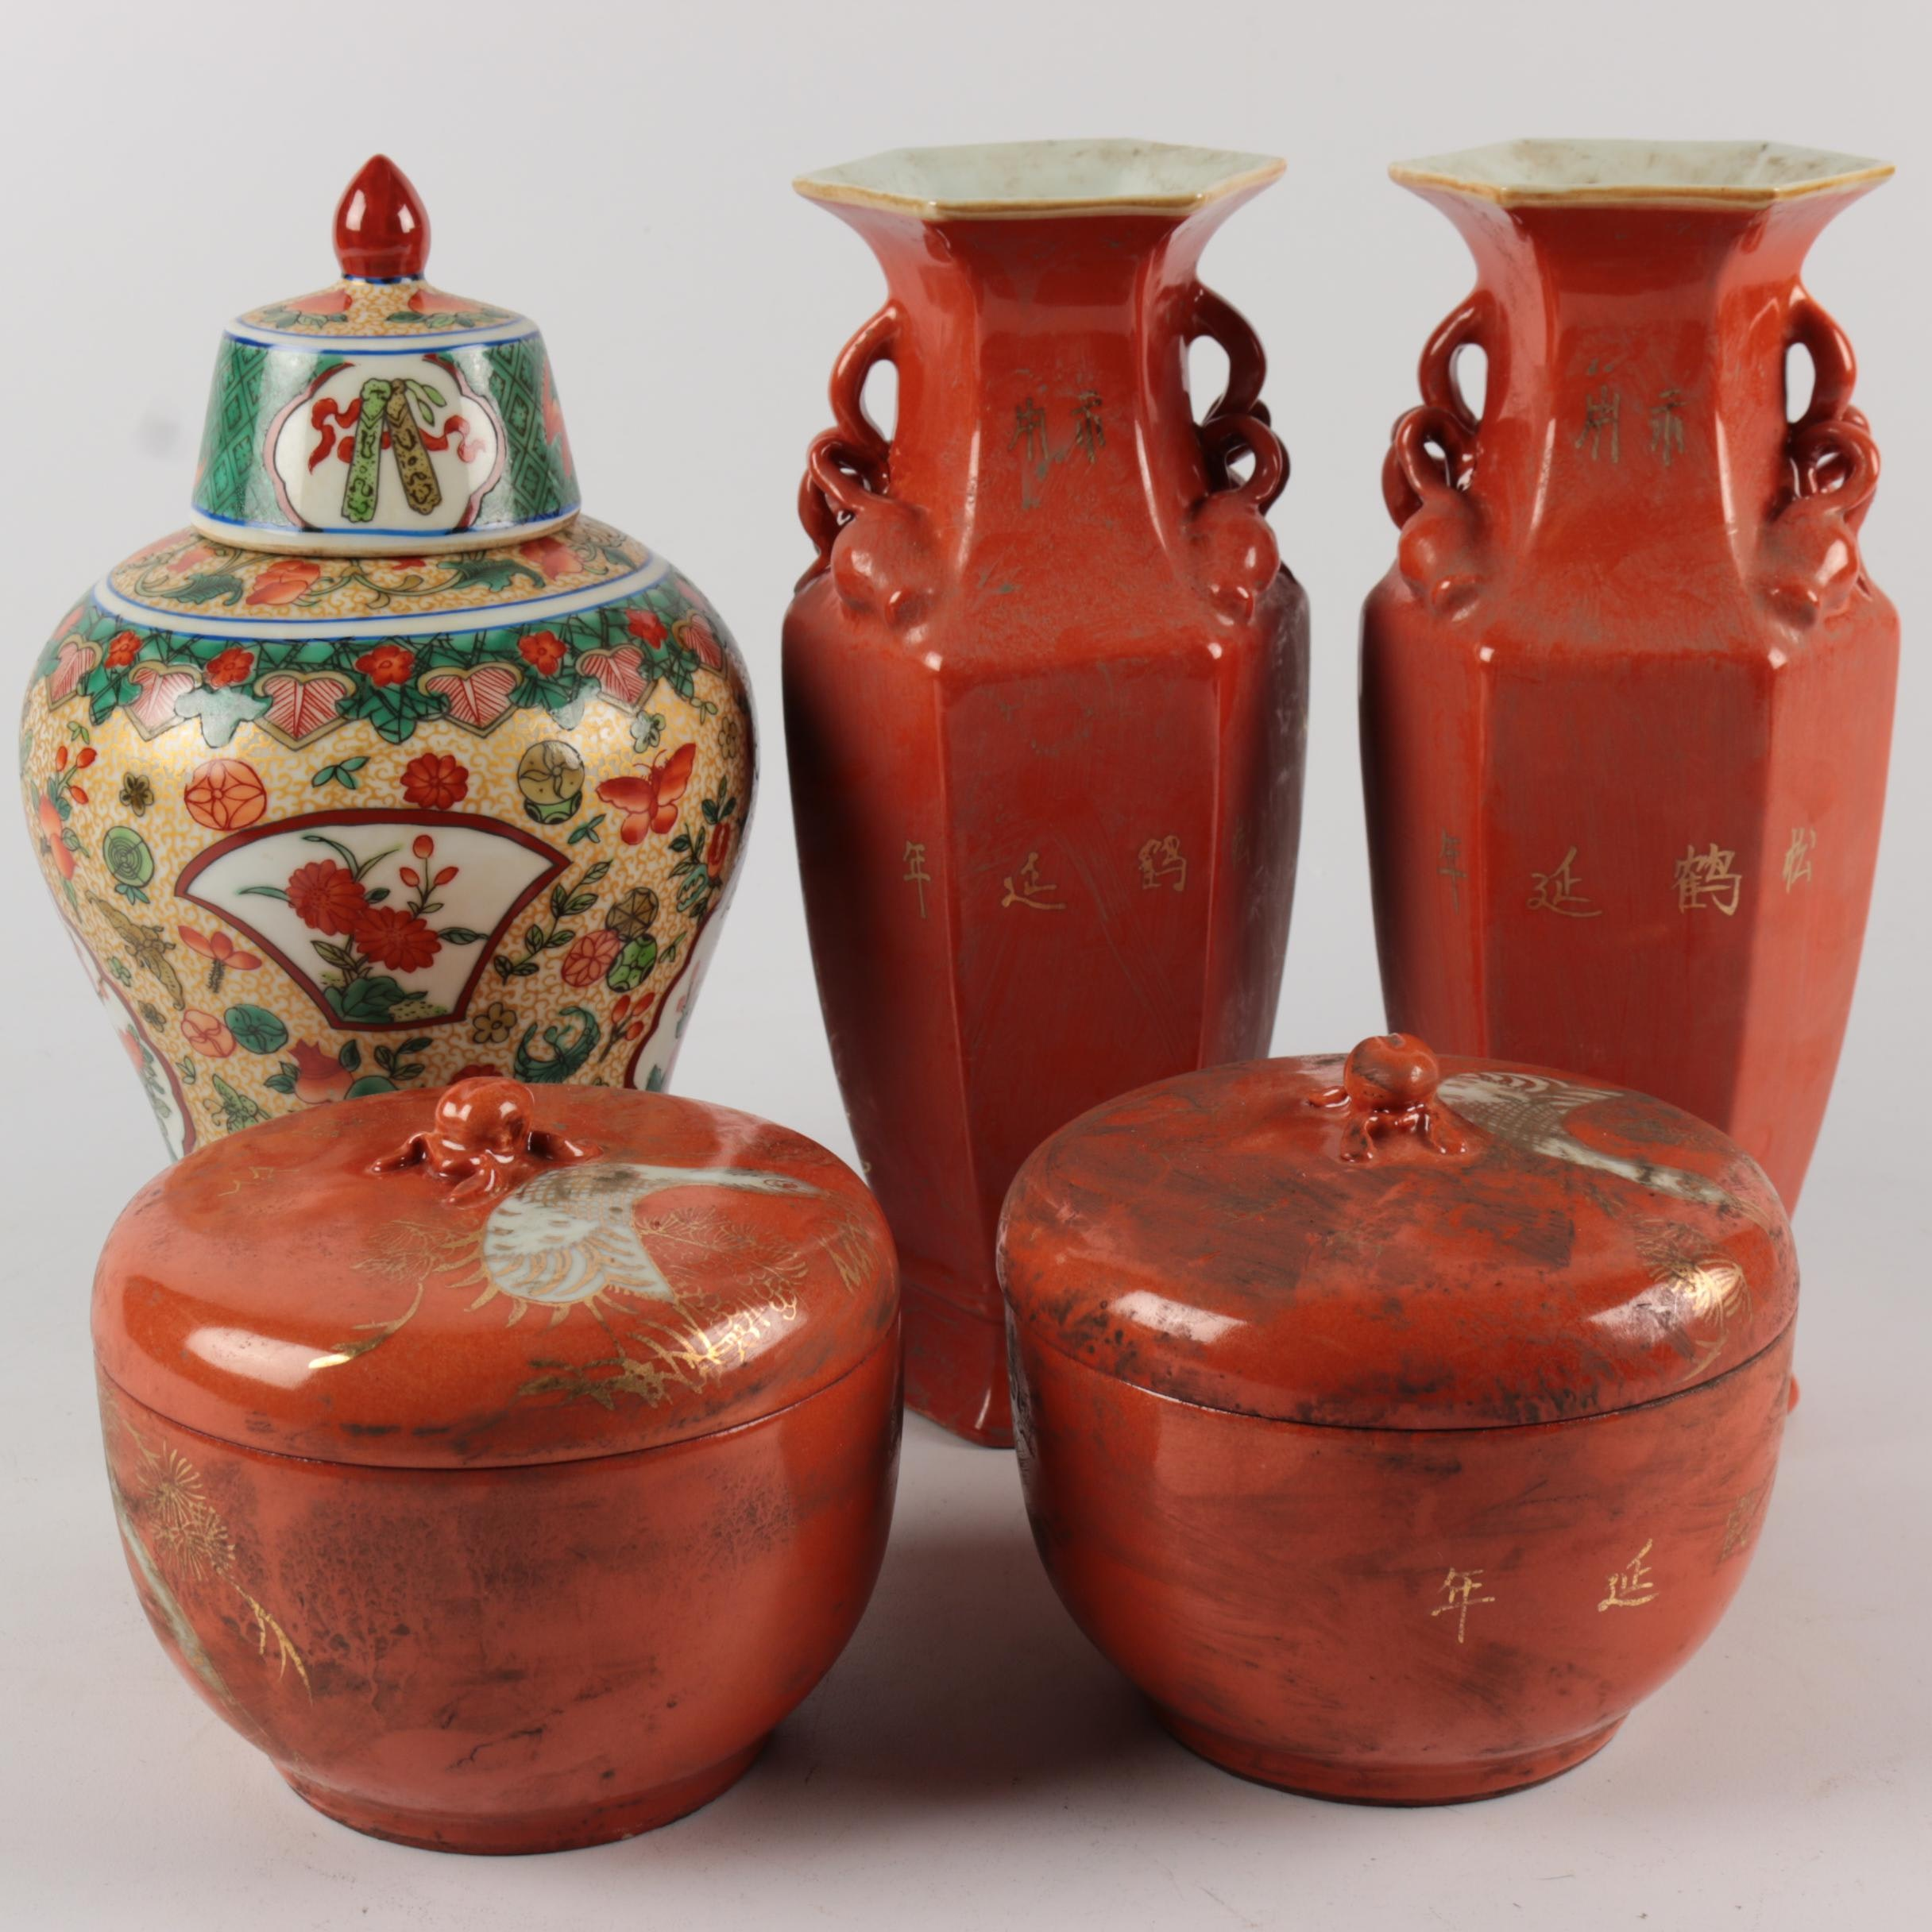 Chinese Hand-Painted Ceramic Vases and Jars